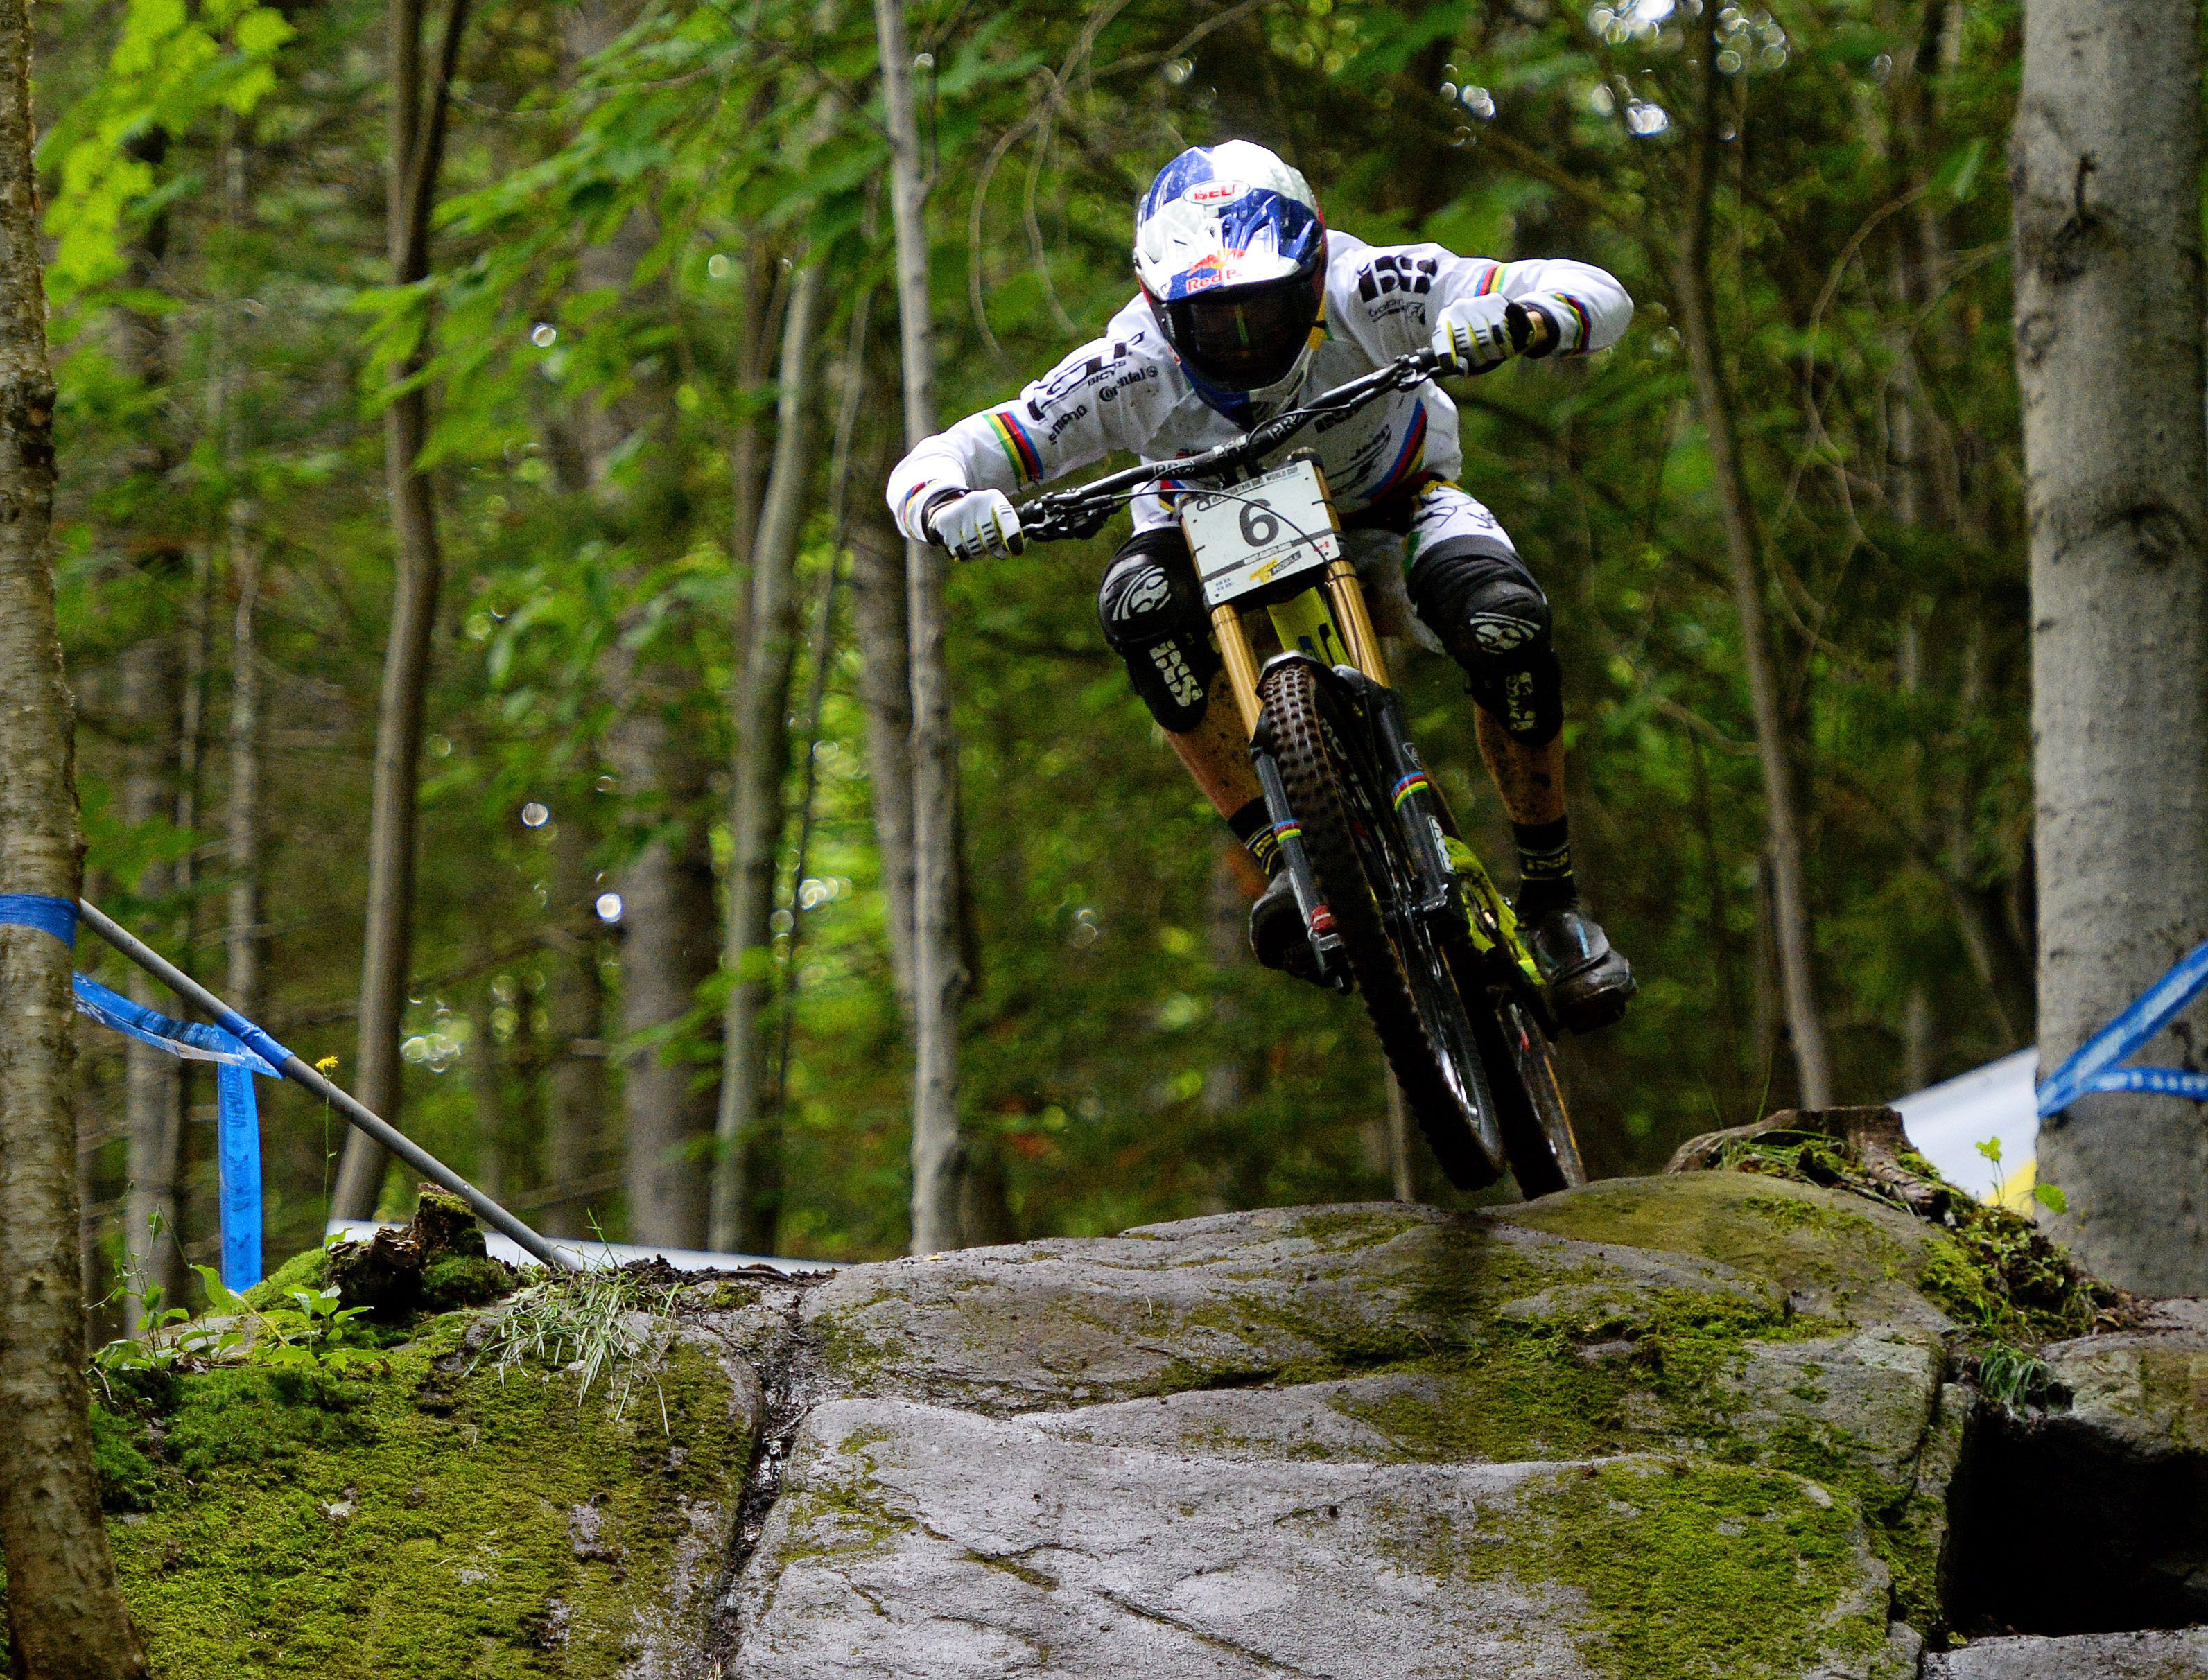 Gee Atherton of Great Britain races during the men's downhill at the UCI mountain bike world cup at Mont-Sainte-Anne in Beaupre, Quebec, on Saturday, Aug. 1, 2015. This is the 25th consecutive year the Mountain Bike World Cup has been held at Mont-Sainte-Anne. (Sean Kilpatrick/The Canadian Press via AP)